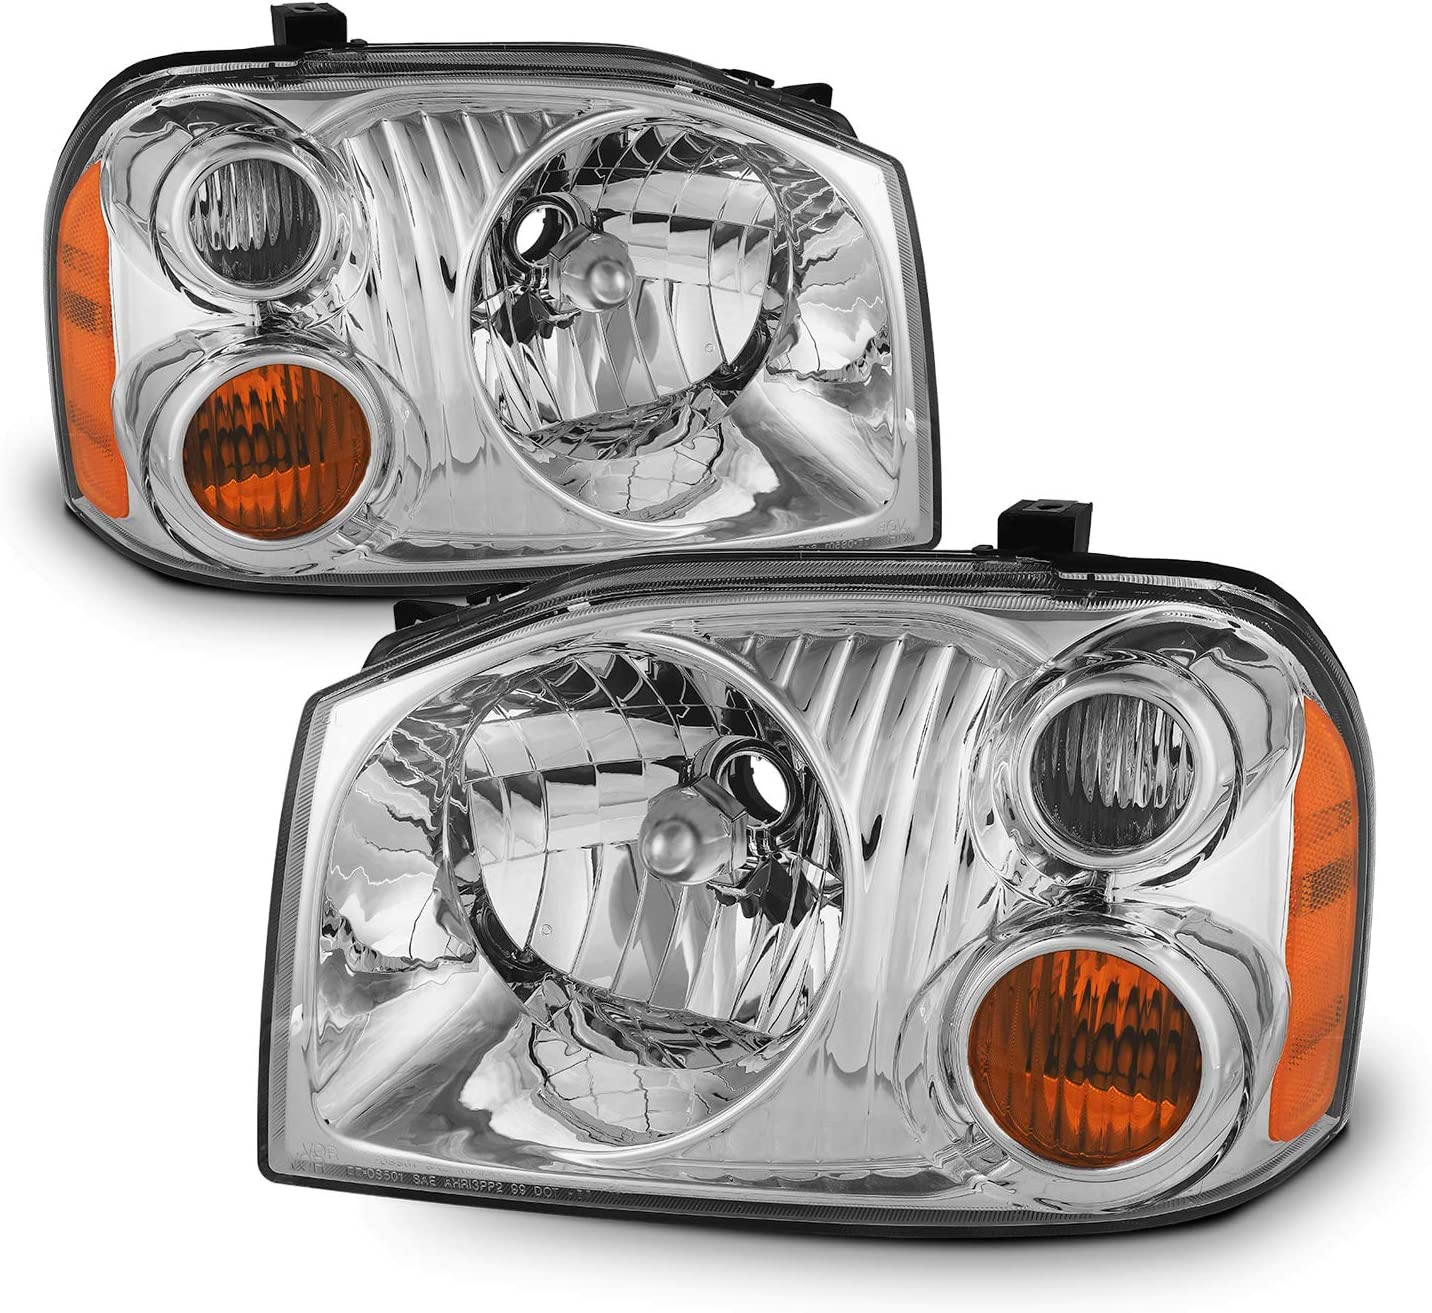 2 PCS For 2001-2004 Nissan Head Genuine Free Shipping OE Replacement Pickup Frontier Some reservation